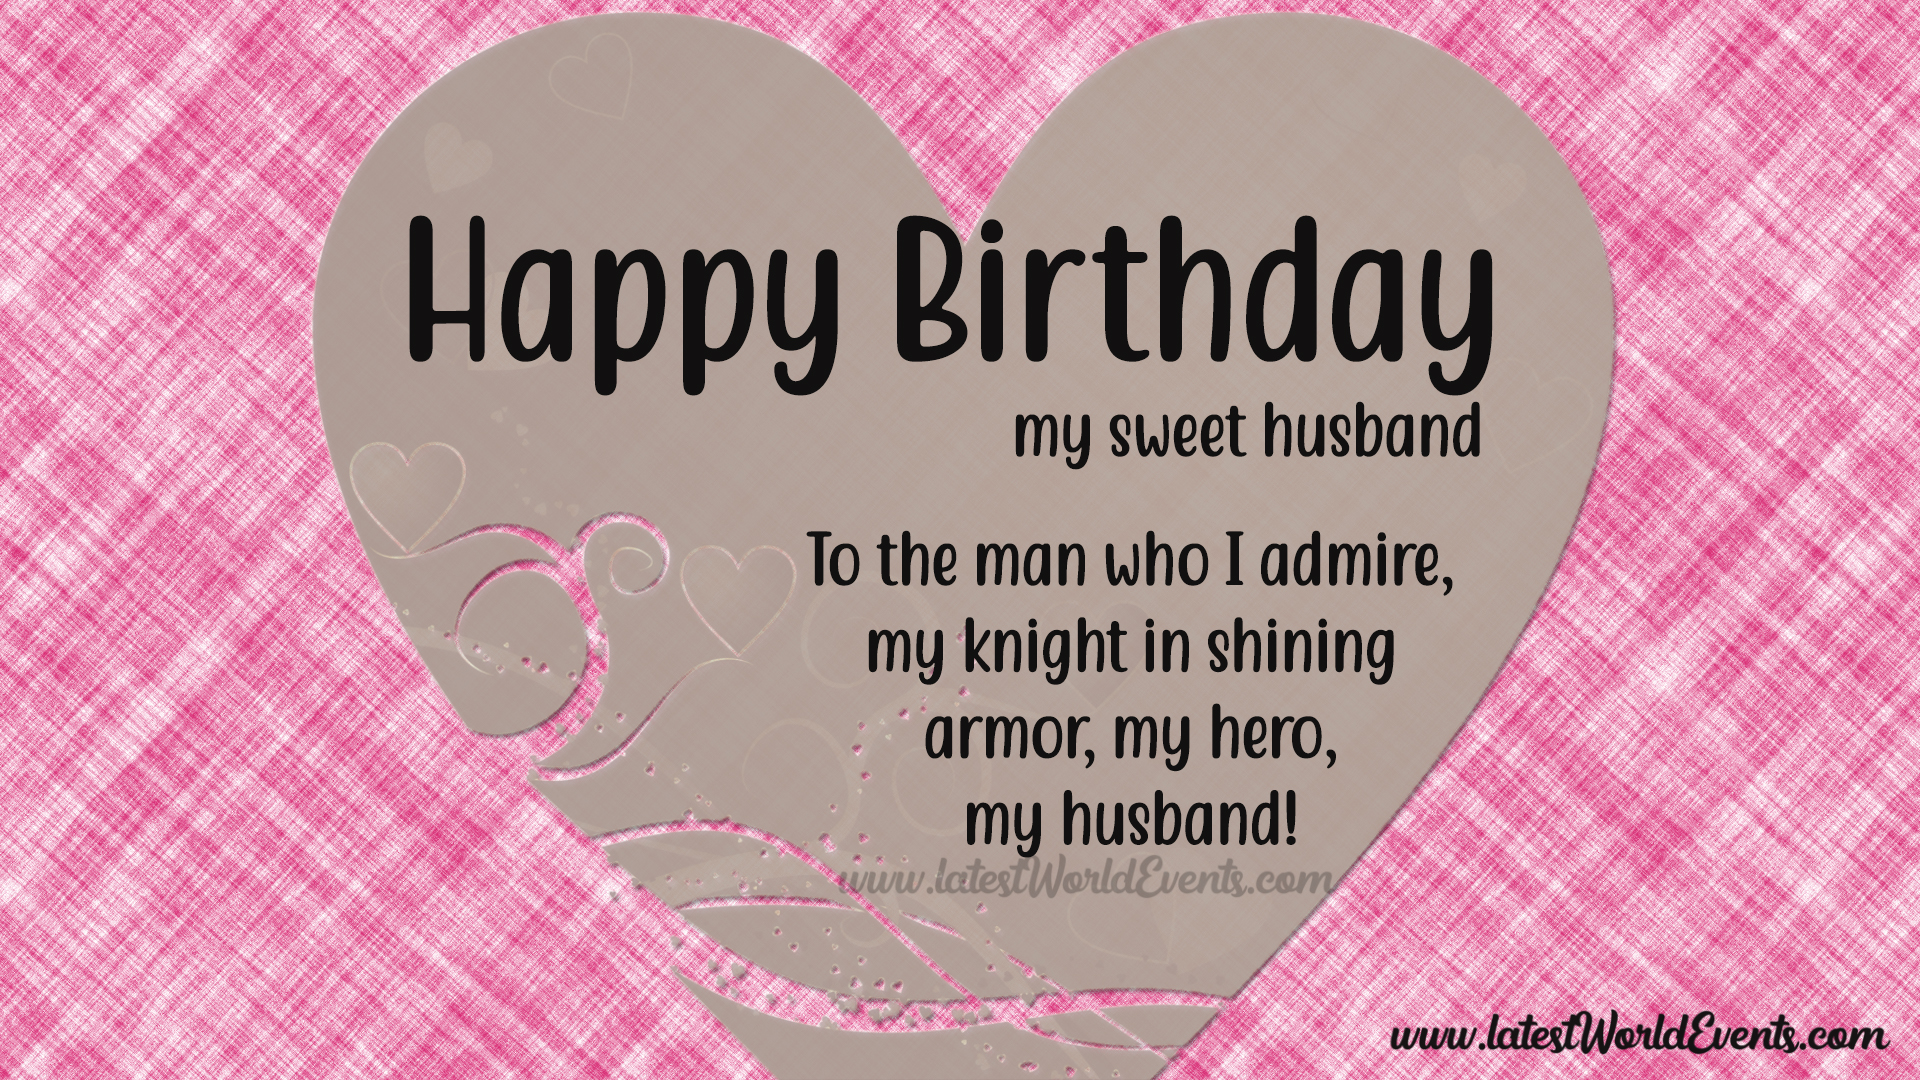 Happy Birthday To My Husband.Romantic Birthday Wishes For Husband Latest World Events